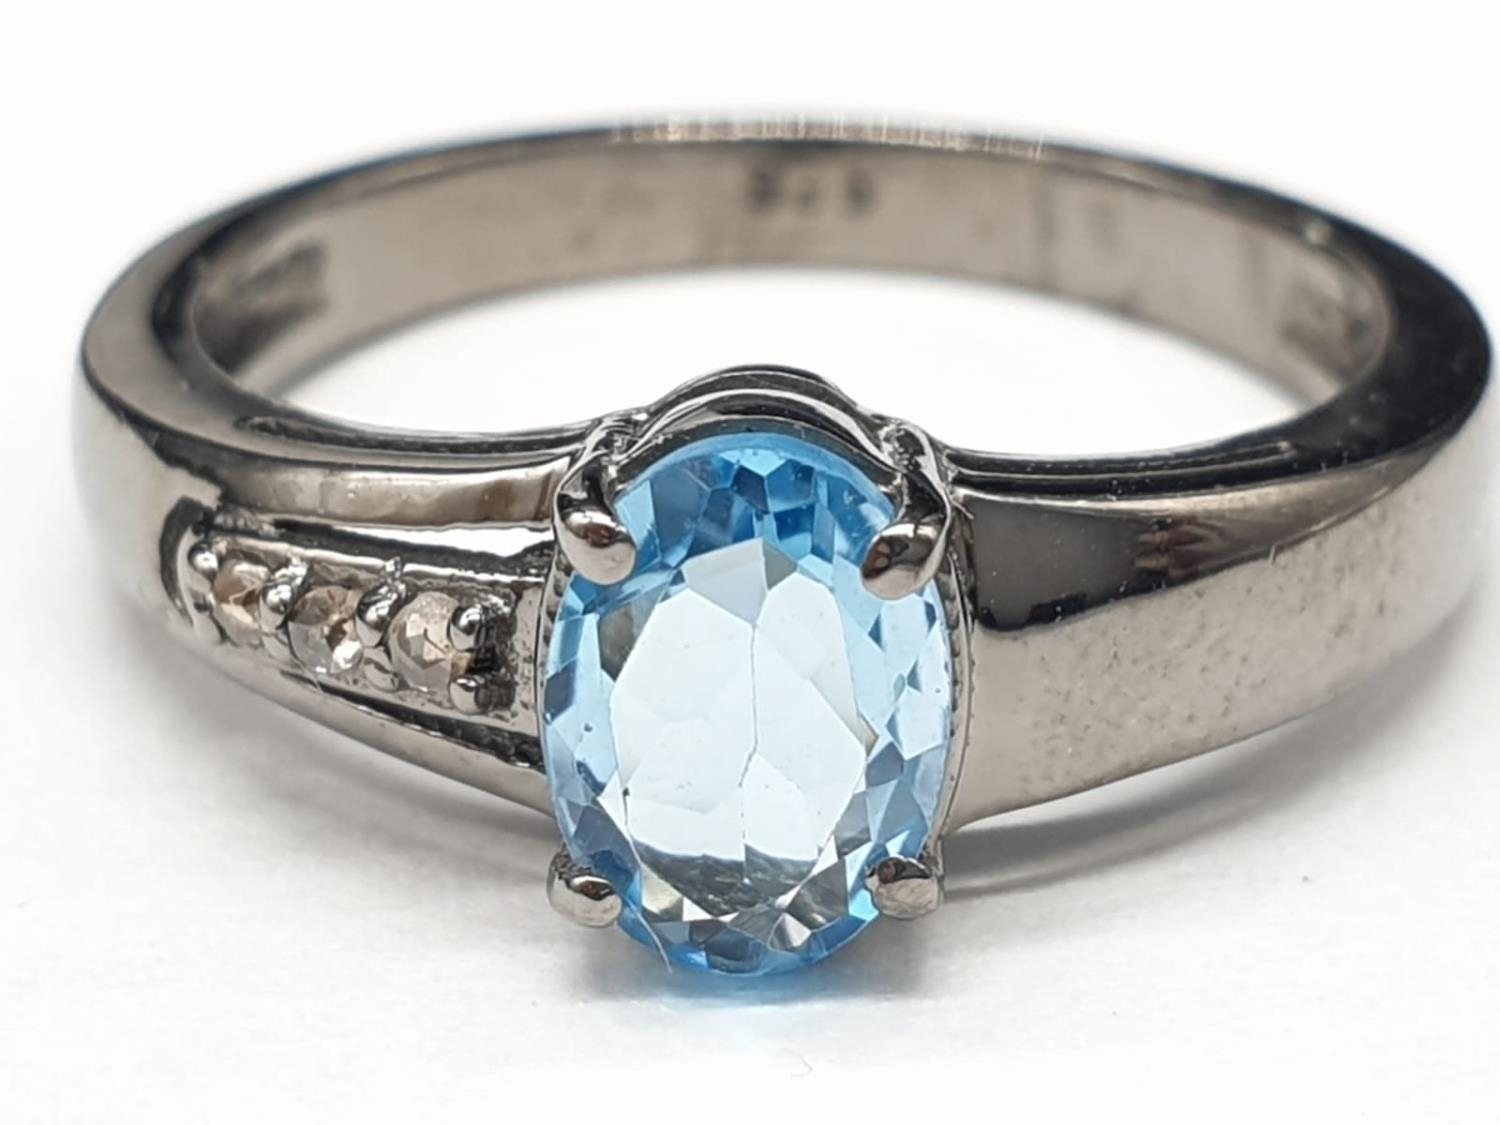 0.86 Ct Blue topaz stone inset a blackened silver ring. With 0.05 Ct rose cut diamonds, weight 2.35g